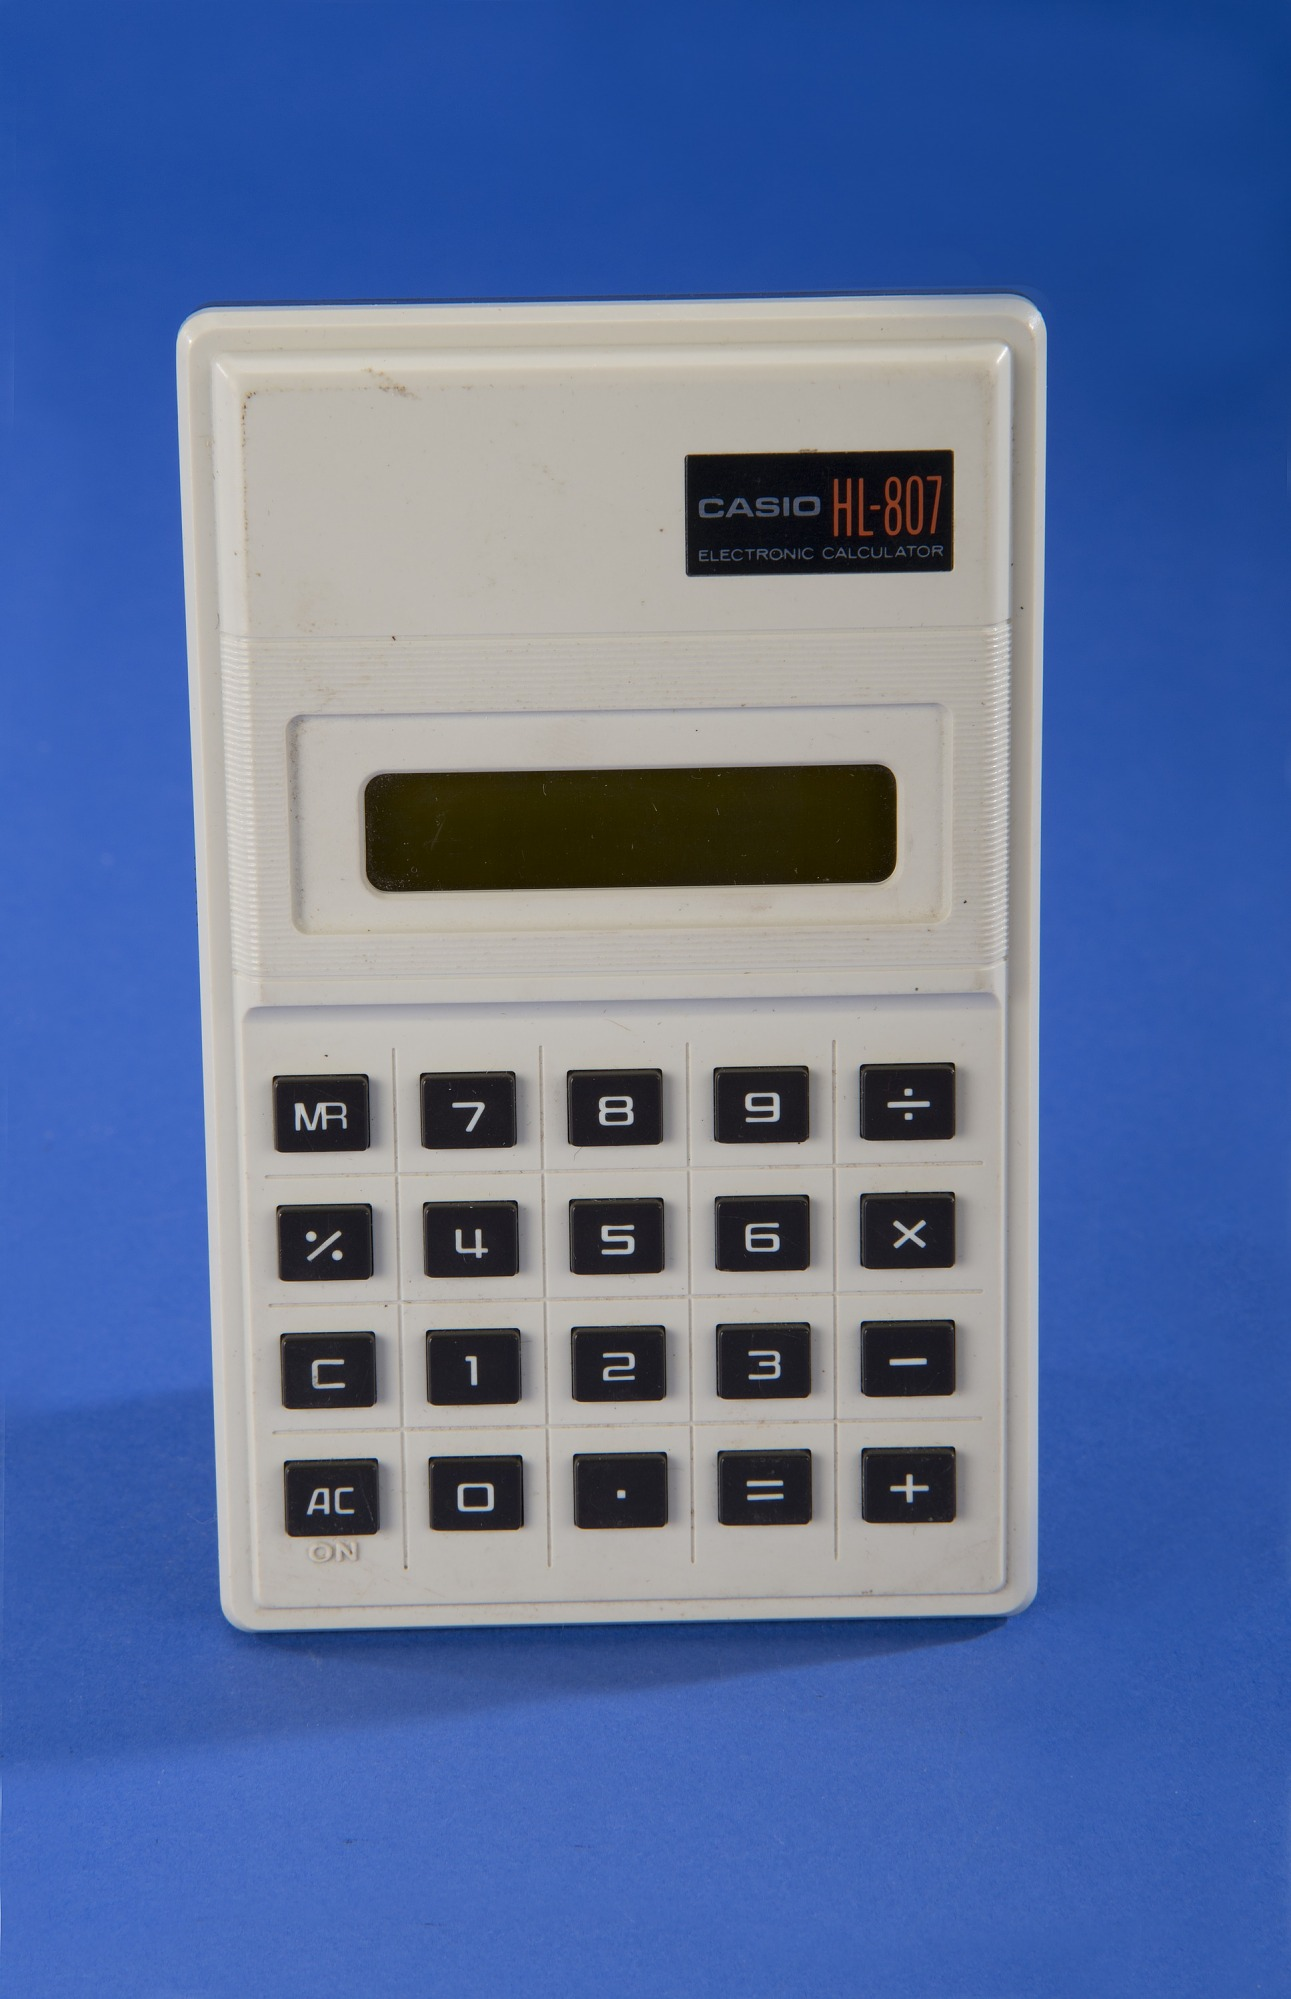 casio hl 807 handheld electronic calculator national museum of description